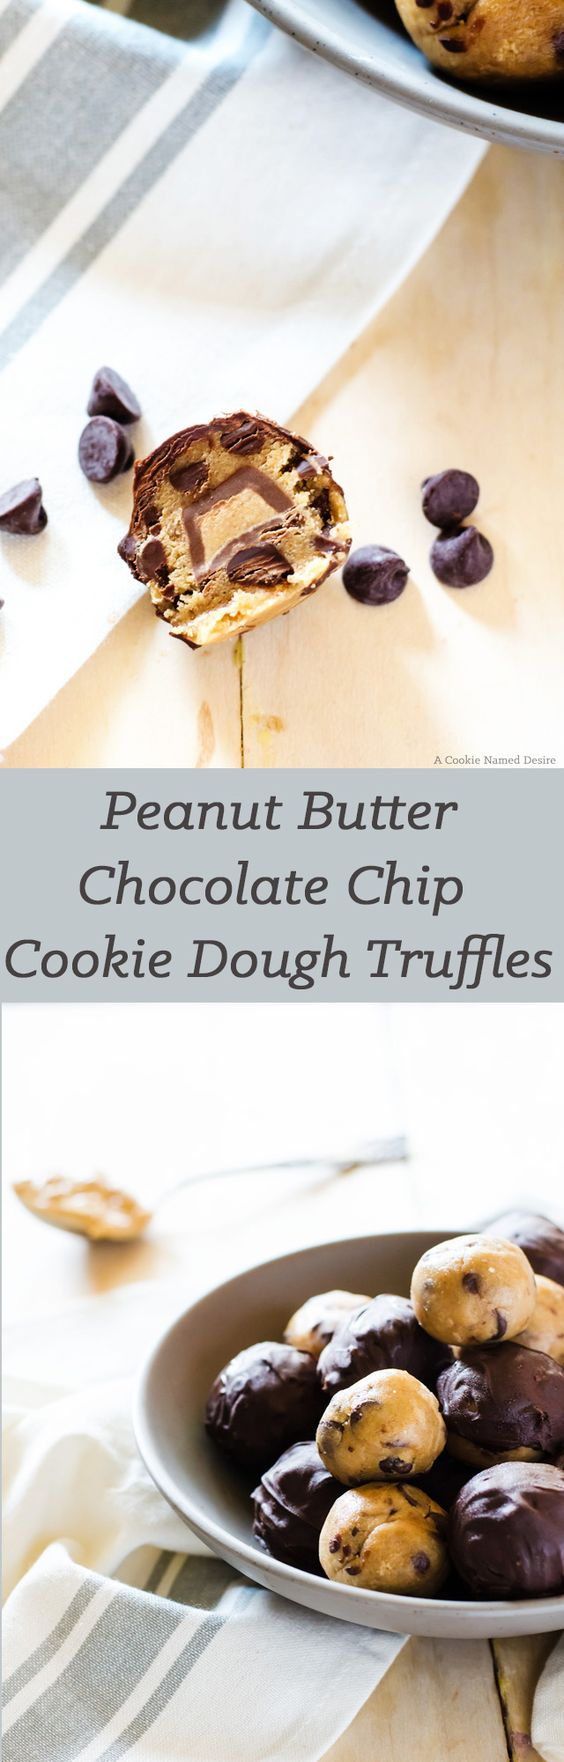 ... chip cookie life cookie dough truffles peanut butter chocolate chips